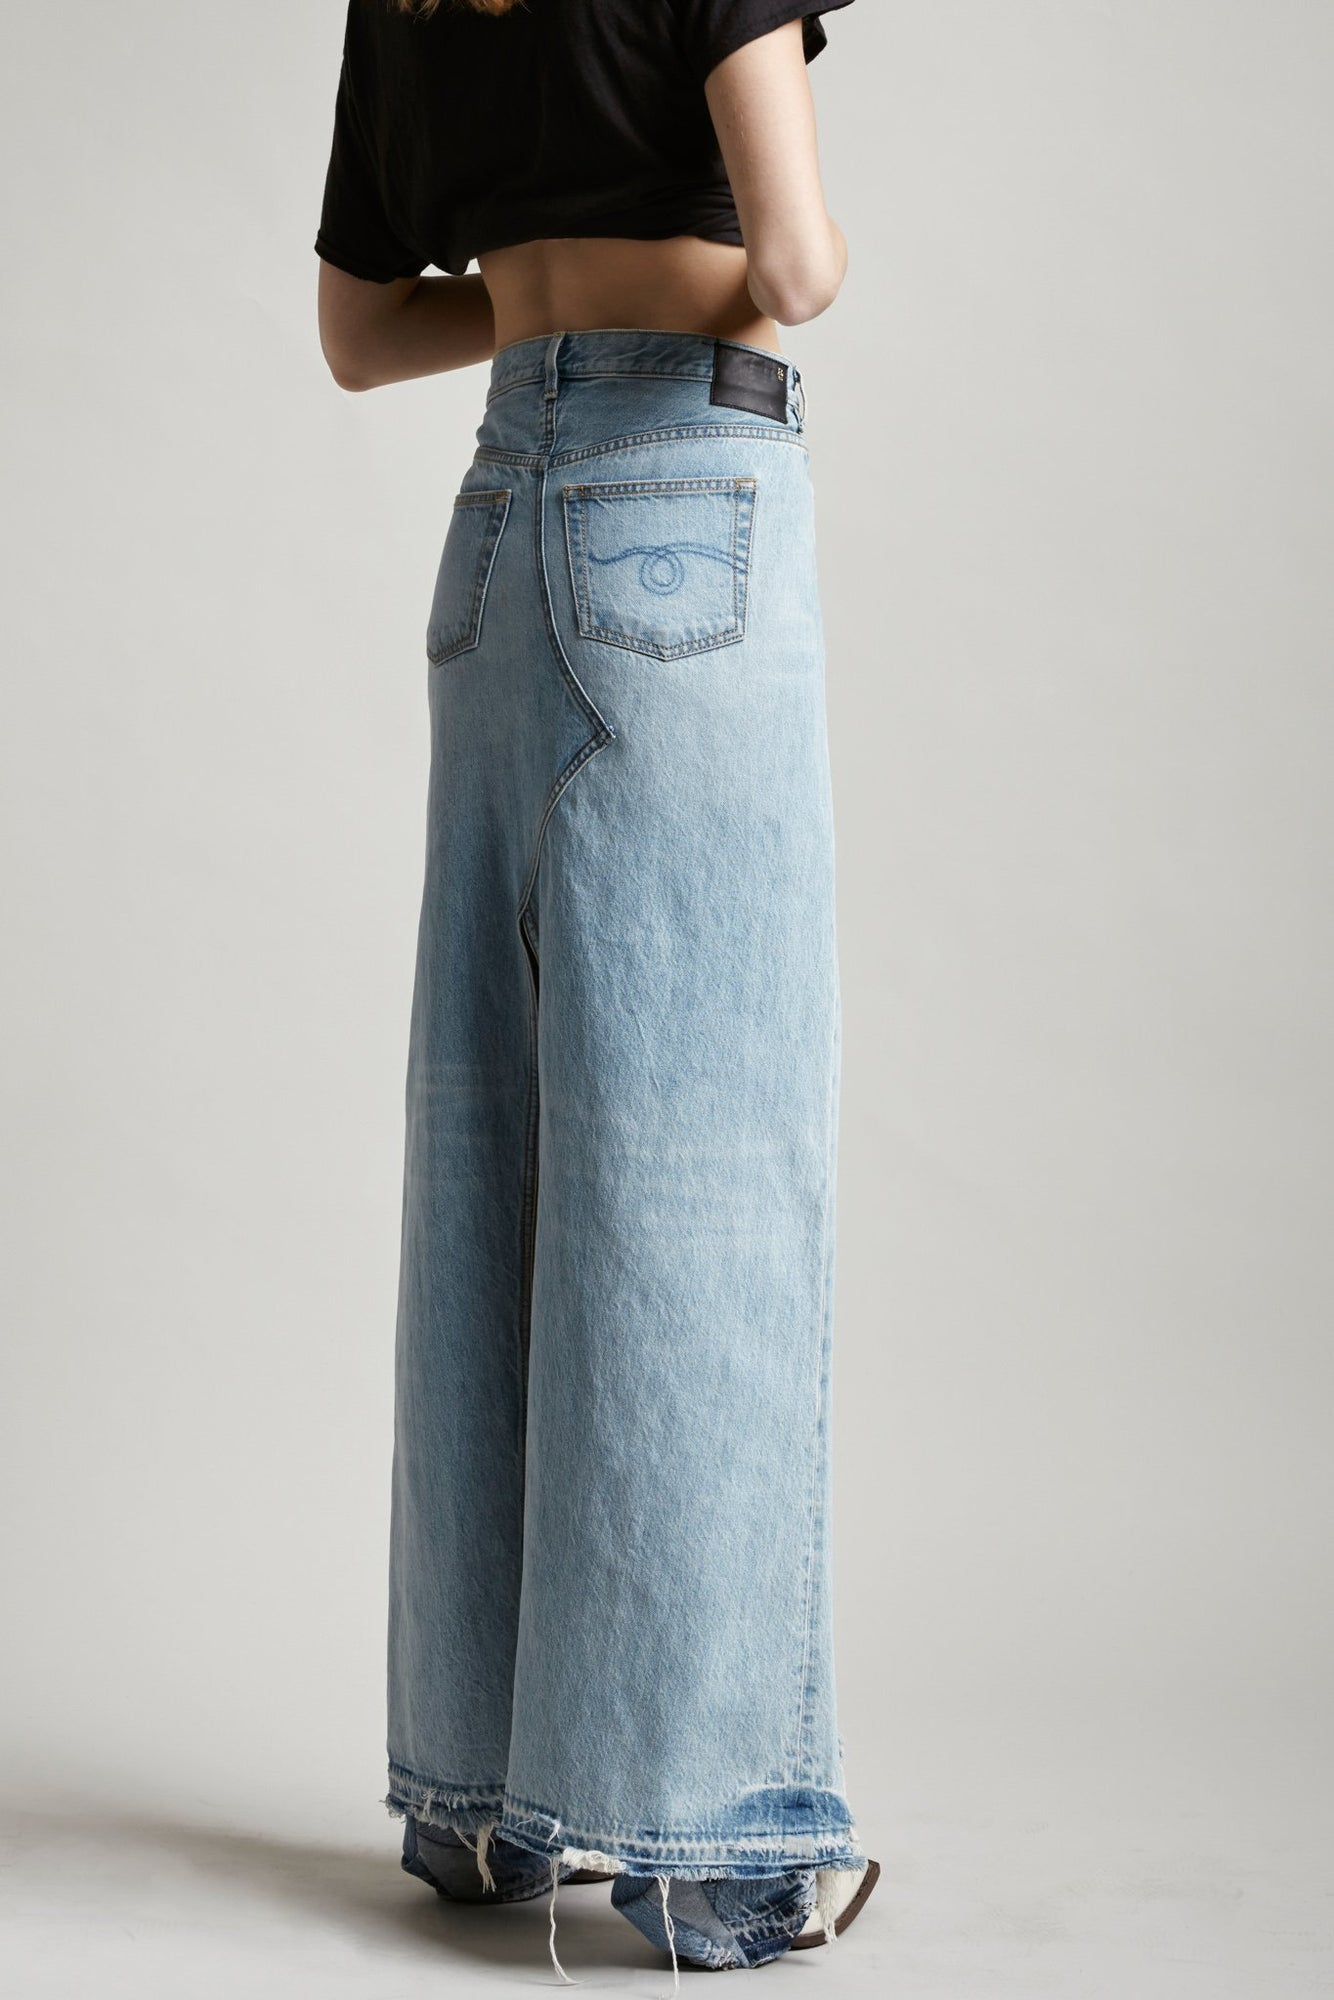 Harrow Denim Skirt (Long Skirt) - Tilly